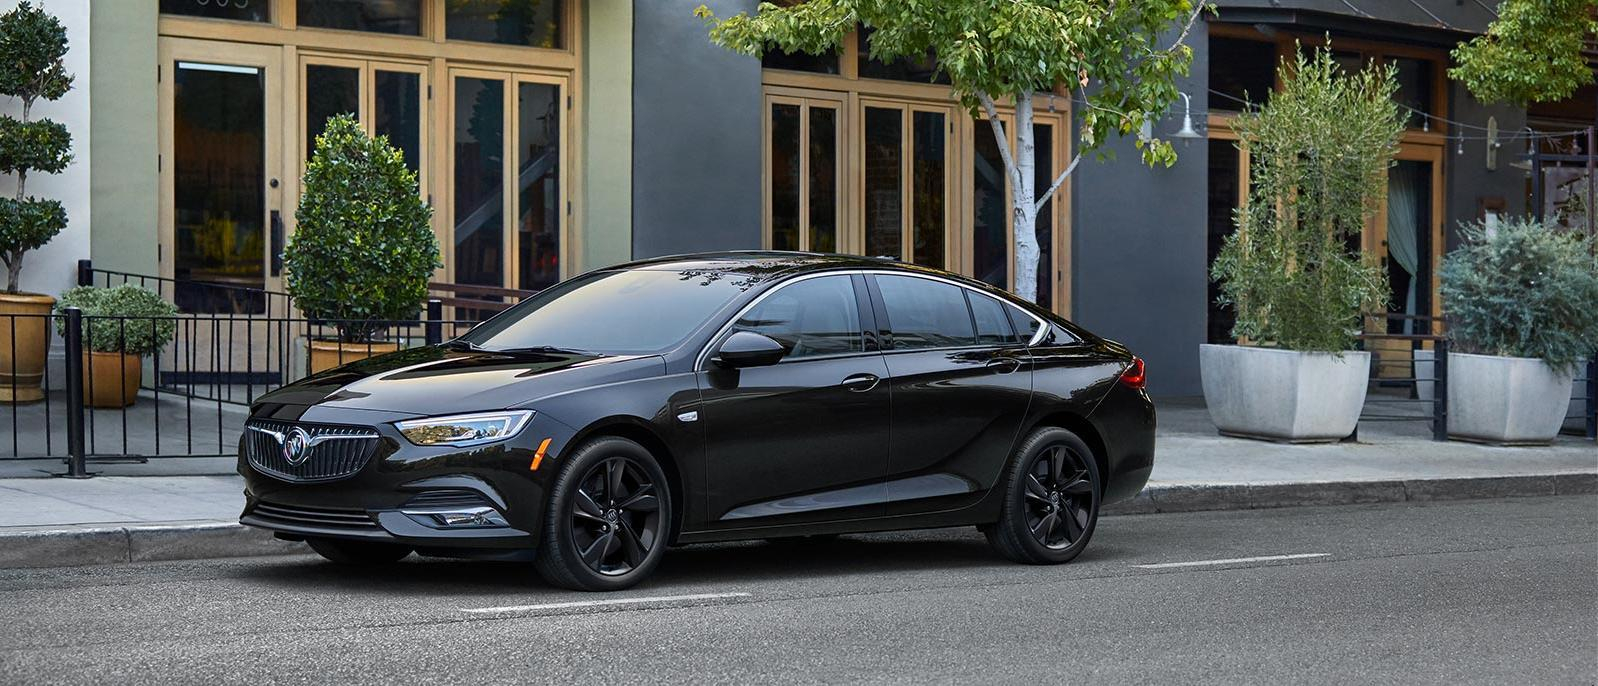 Griffin Price 2021 Buick Regal Sportback Horsepower, Inventory, Lease